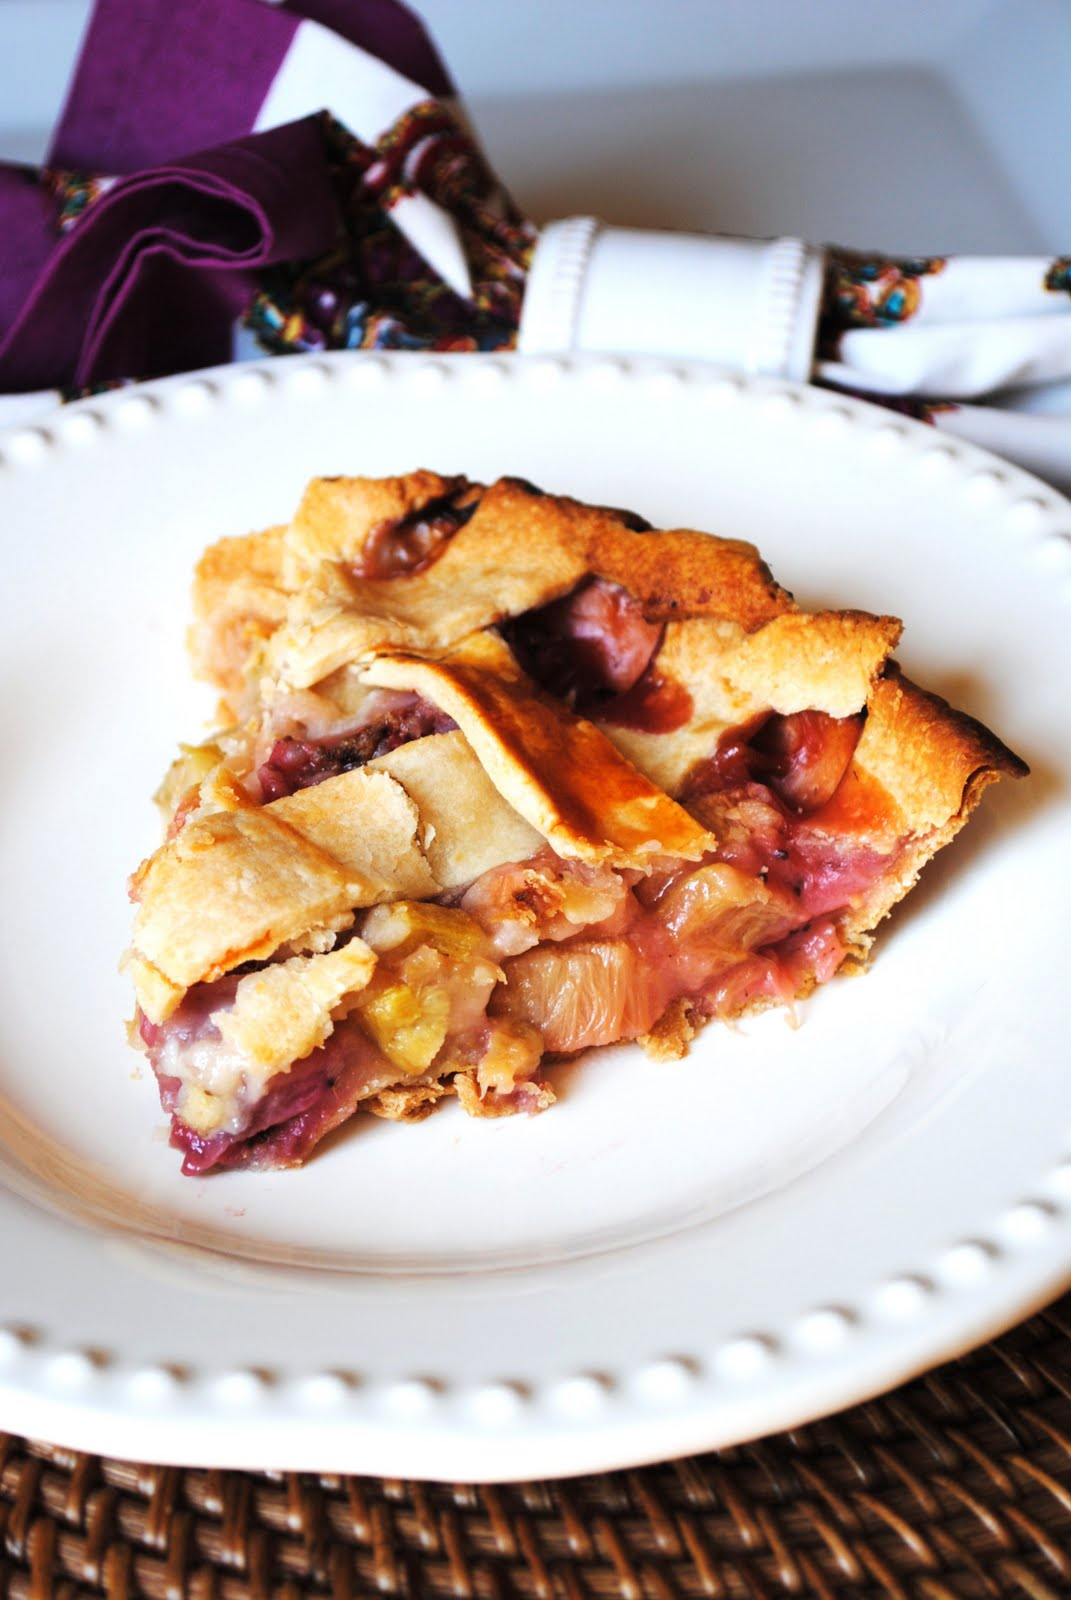 Strawberry Rhubarb Pie - How To: Simplify